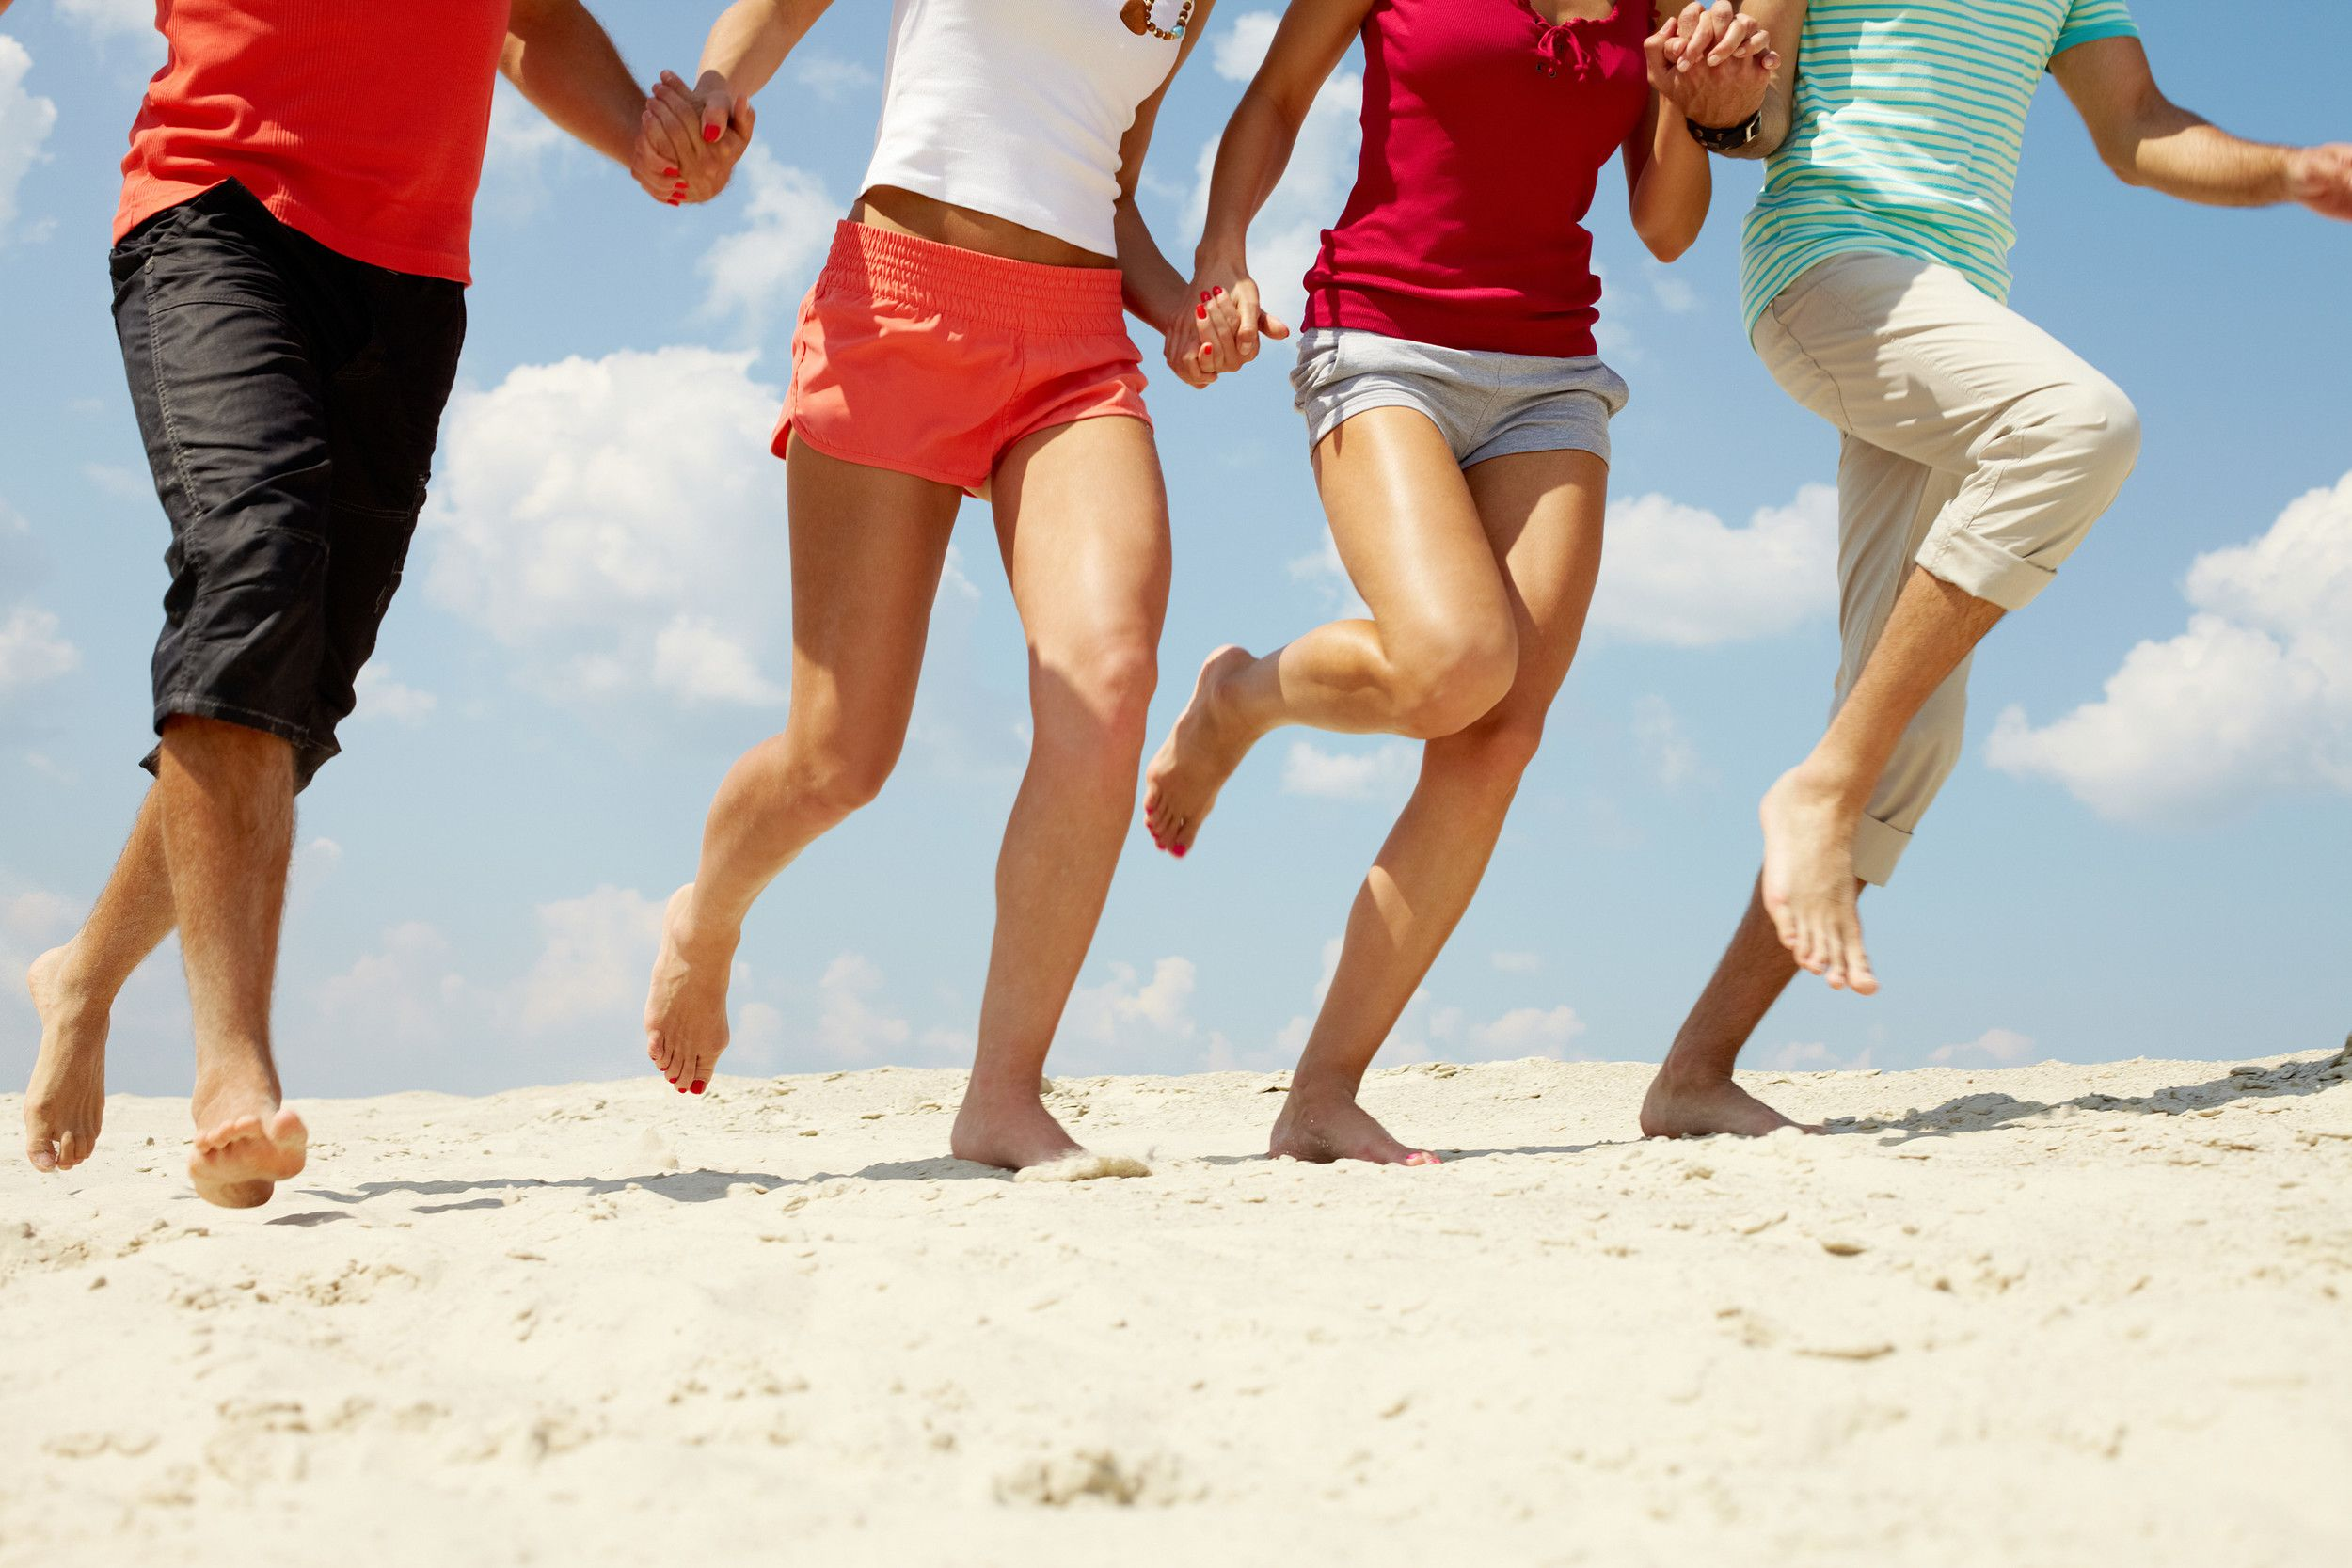 <p>It's the Friday Five and with triathlon season starting up, I am sharing 5 fun reasons to do a Triathlon! ...